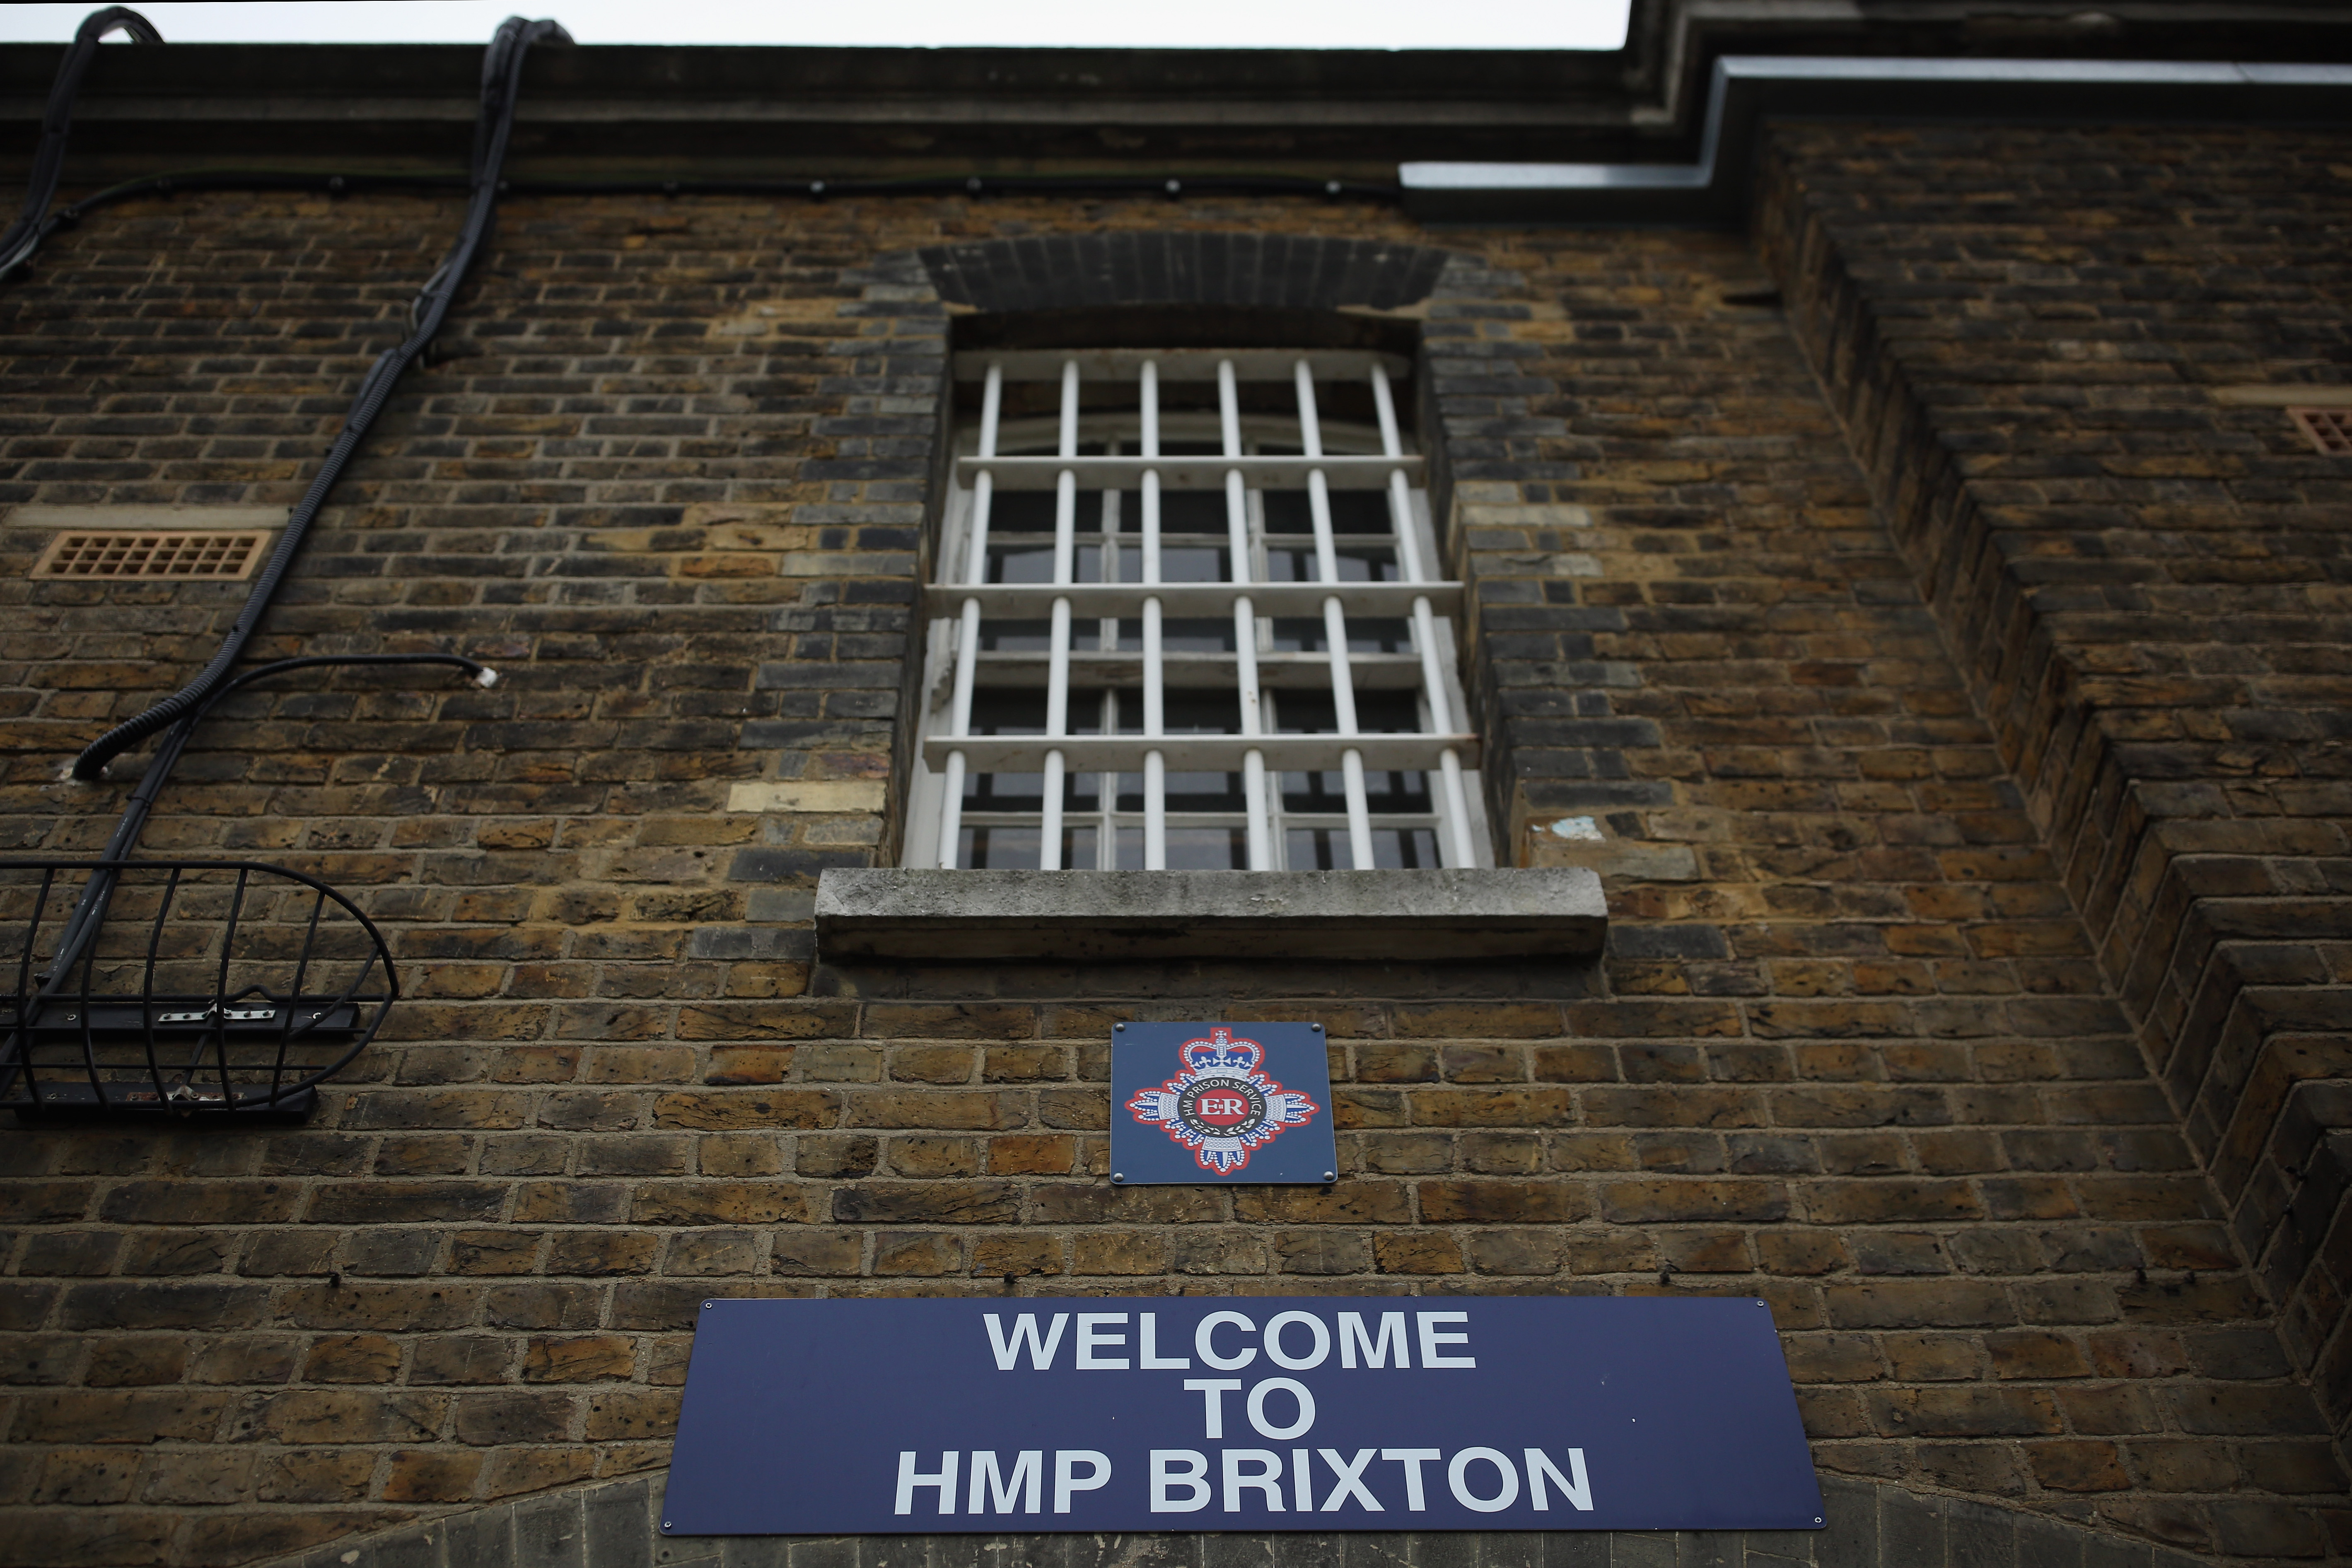 A general view of HM Prison Brixton on November 9, 2015 in London, England. The Government has unveiled plans to build nine new prisons, with five prisons to be built by 2020. The new prisons will replace old Victorian prisons in city centres and allow these sites to be sold for housing.